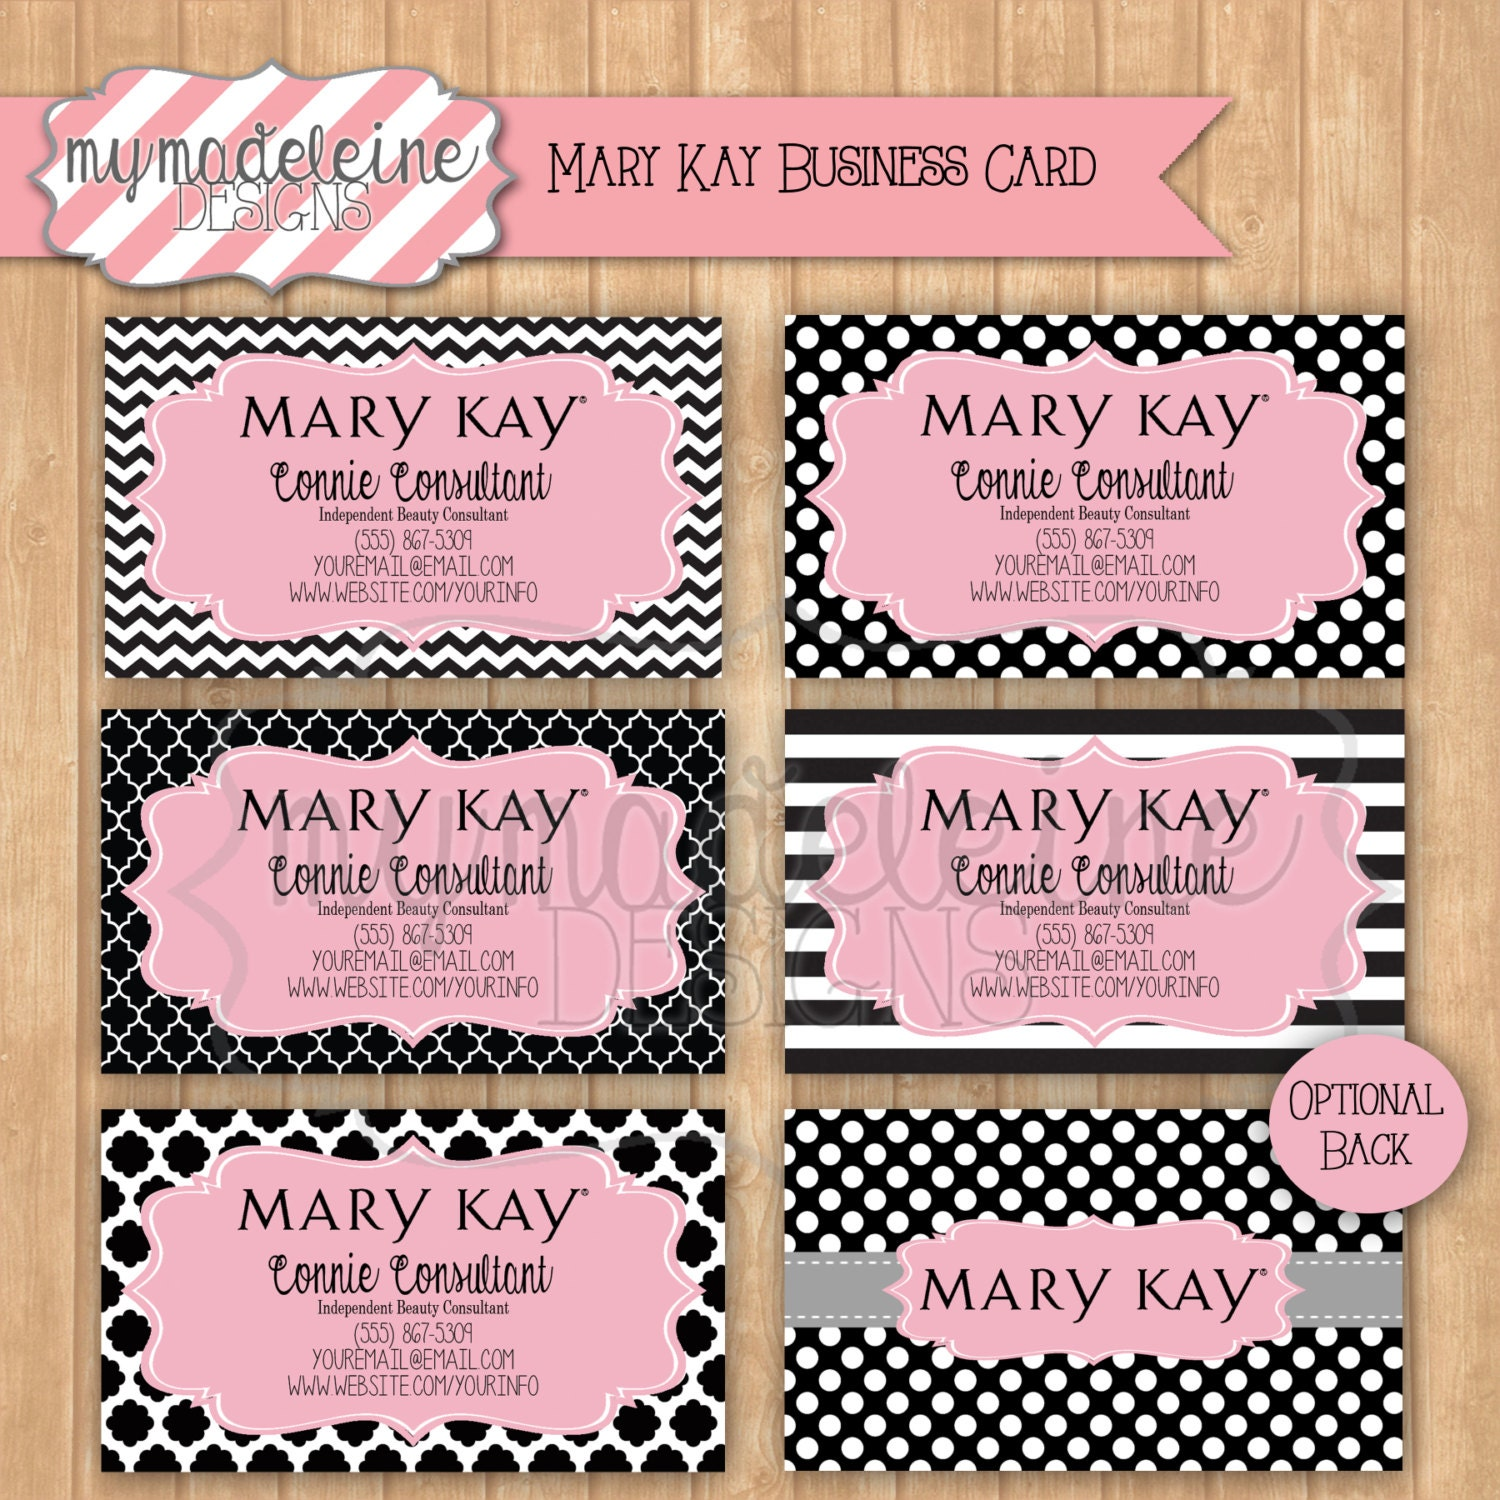 Best Mary Kay Business Cards Business Cards